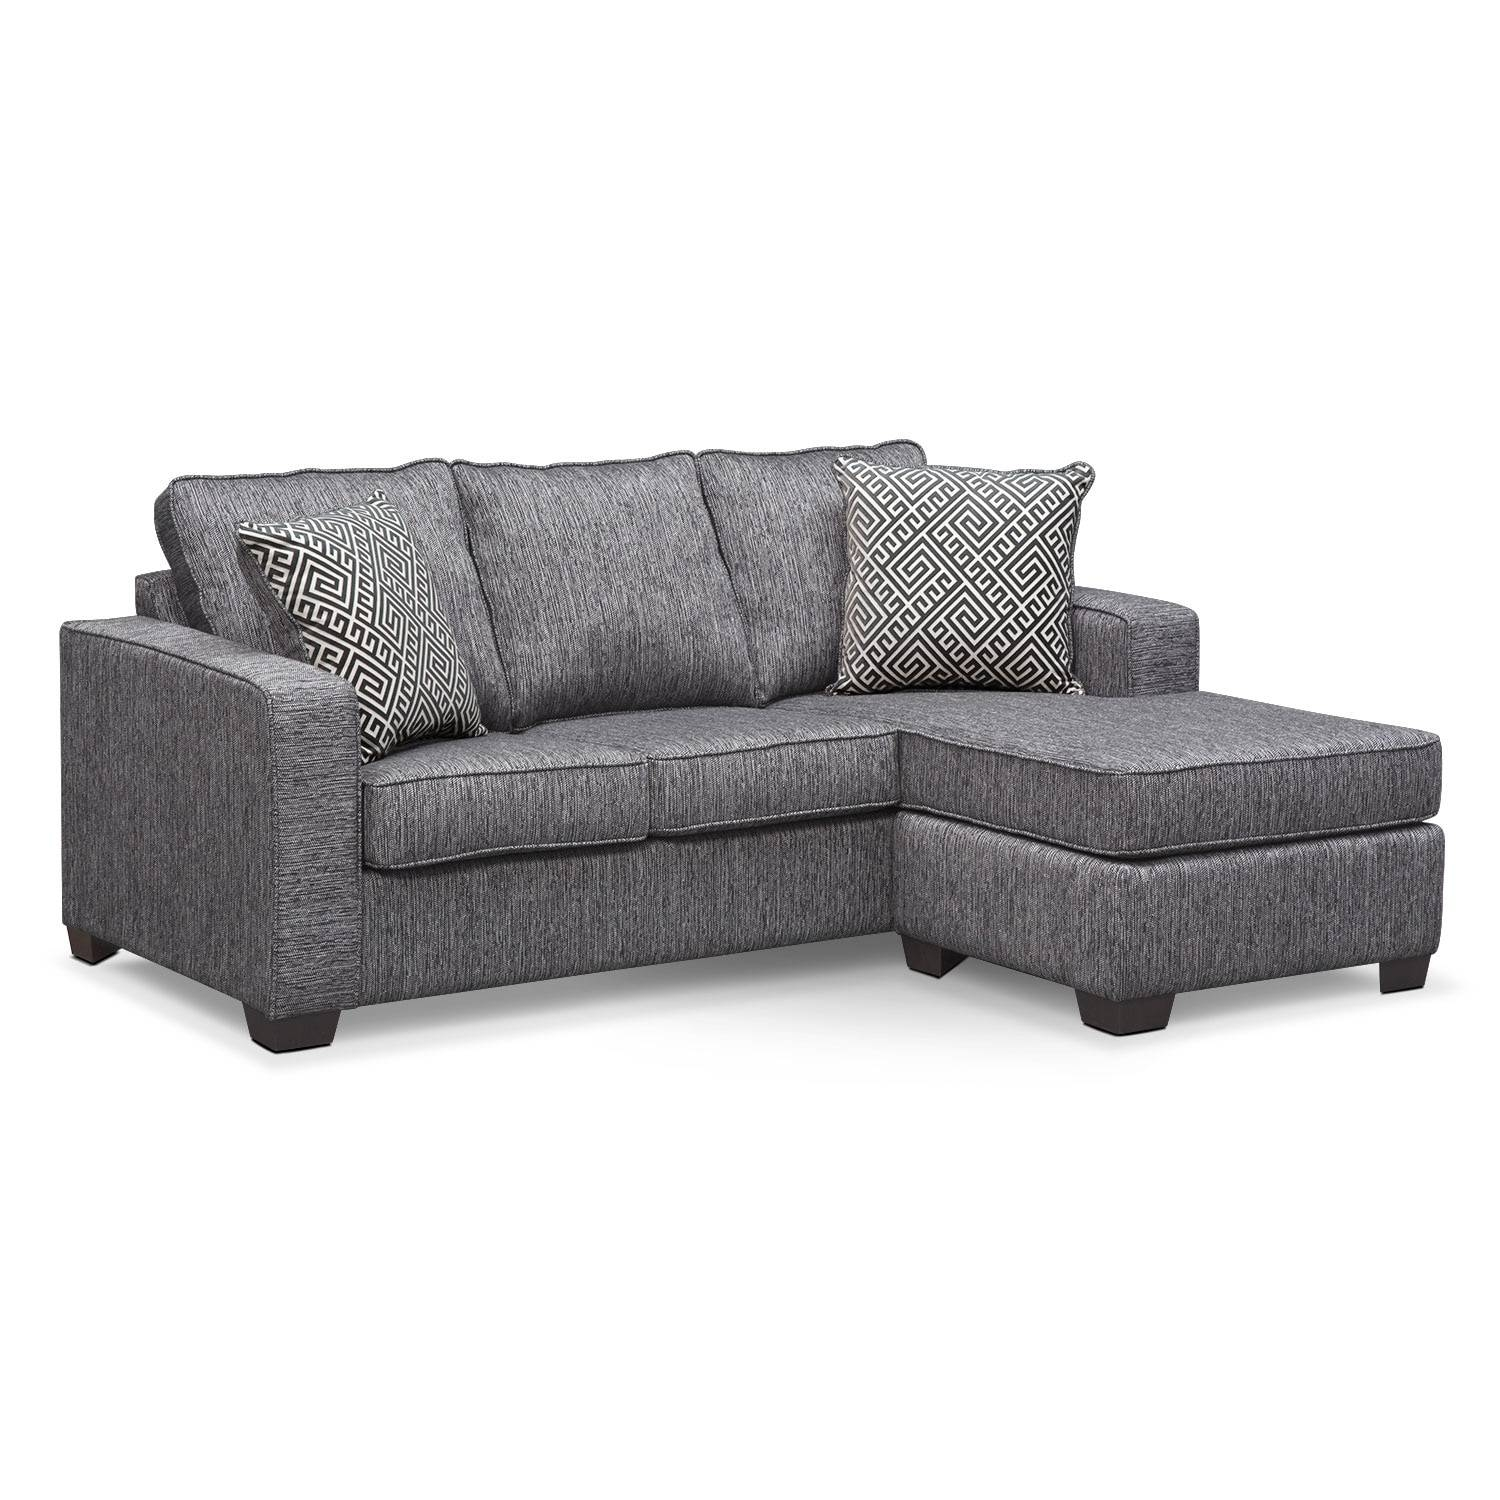 Sleeper Sofas | Value City Furniture | Value City Furniture Pertaining To Sofa Beds With Chaise Lounge (View 9 of 15)